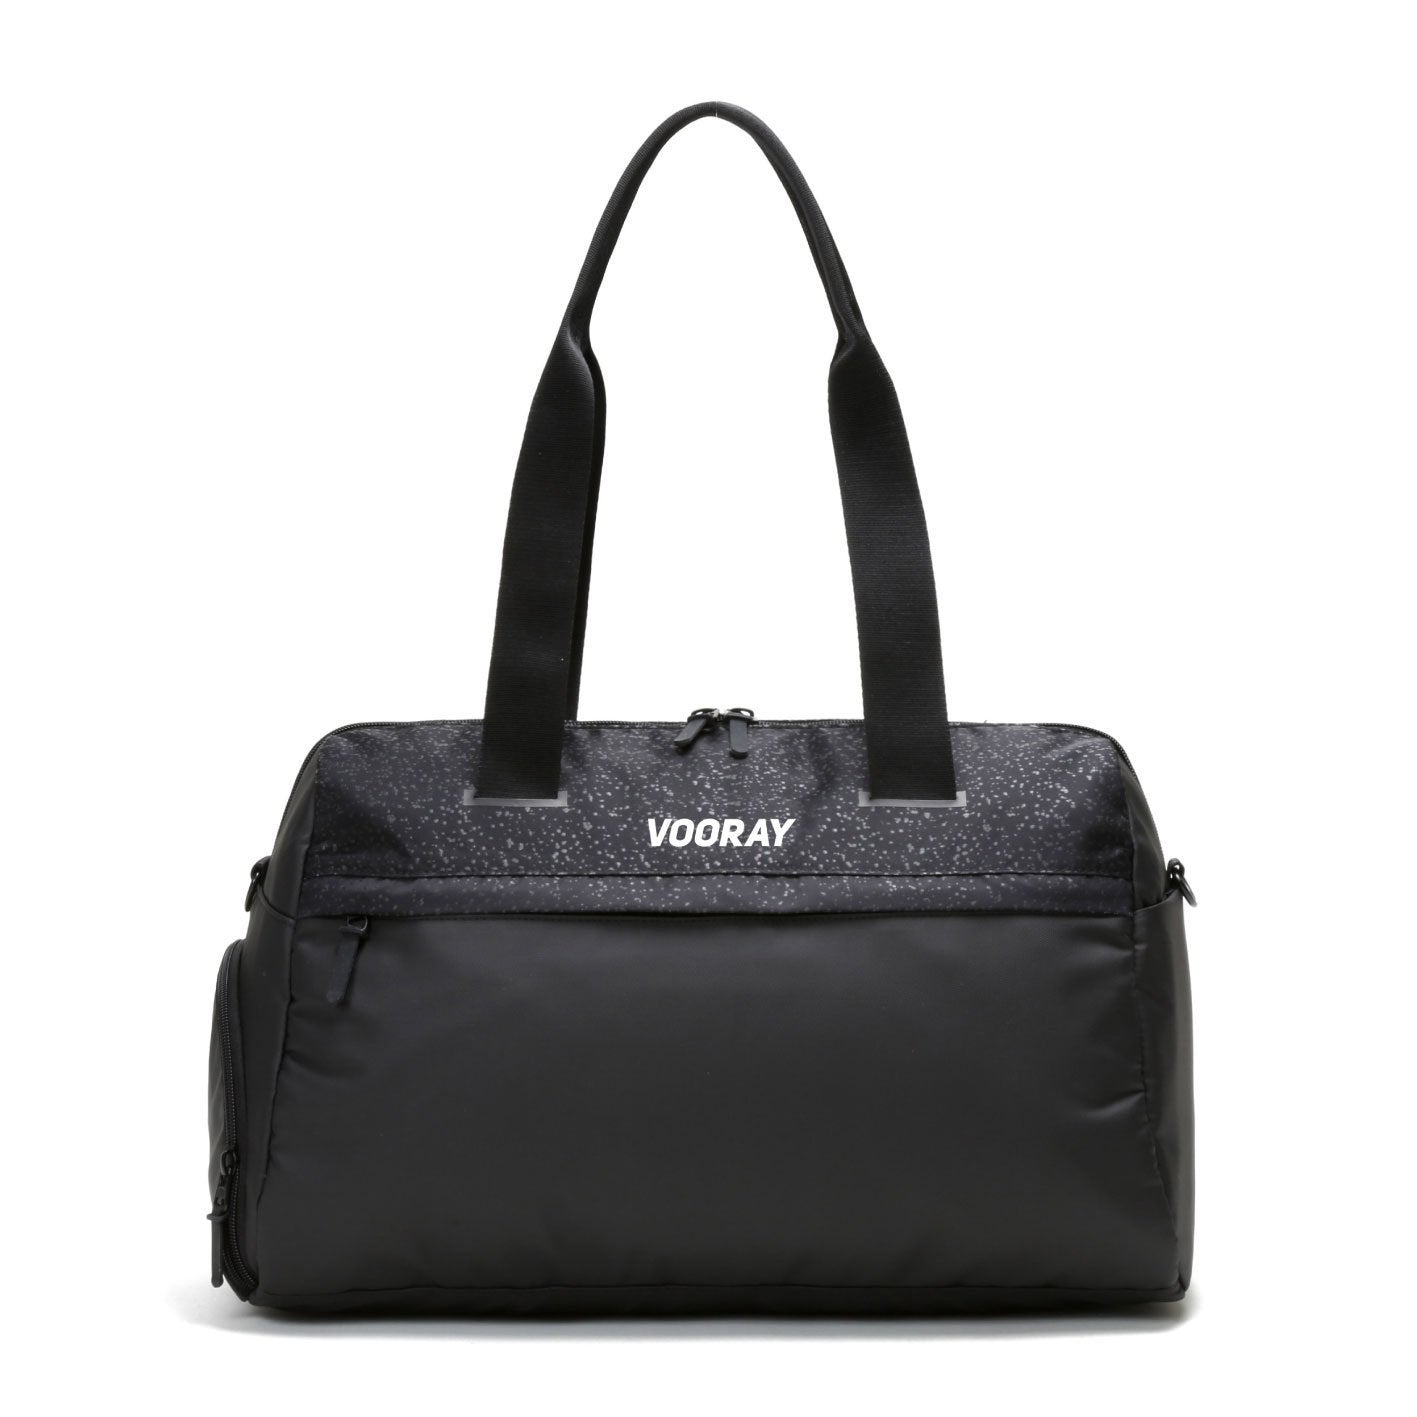 Vooray Trainer Duffel-Black Foil